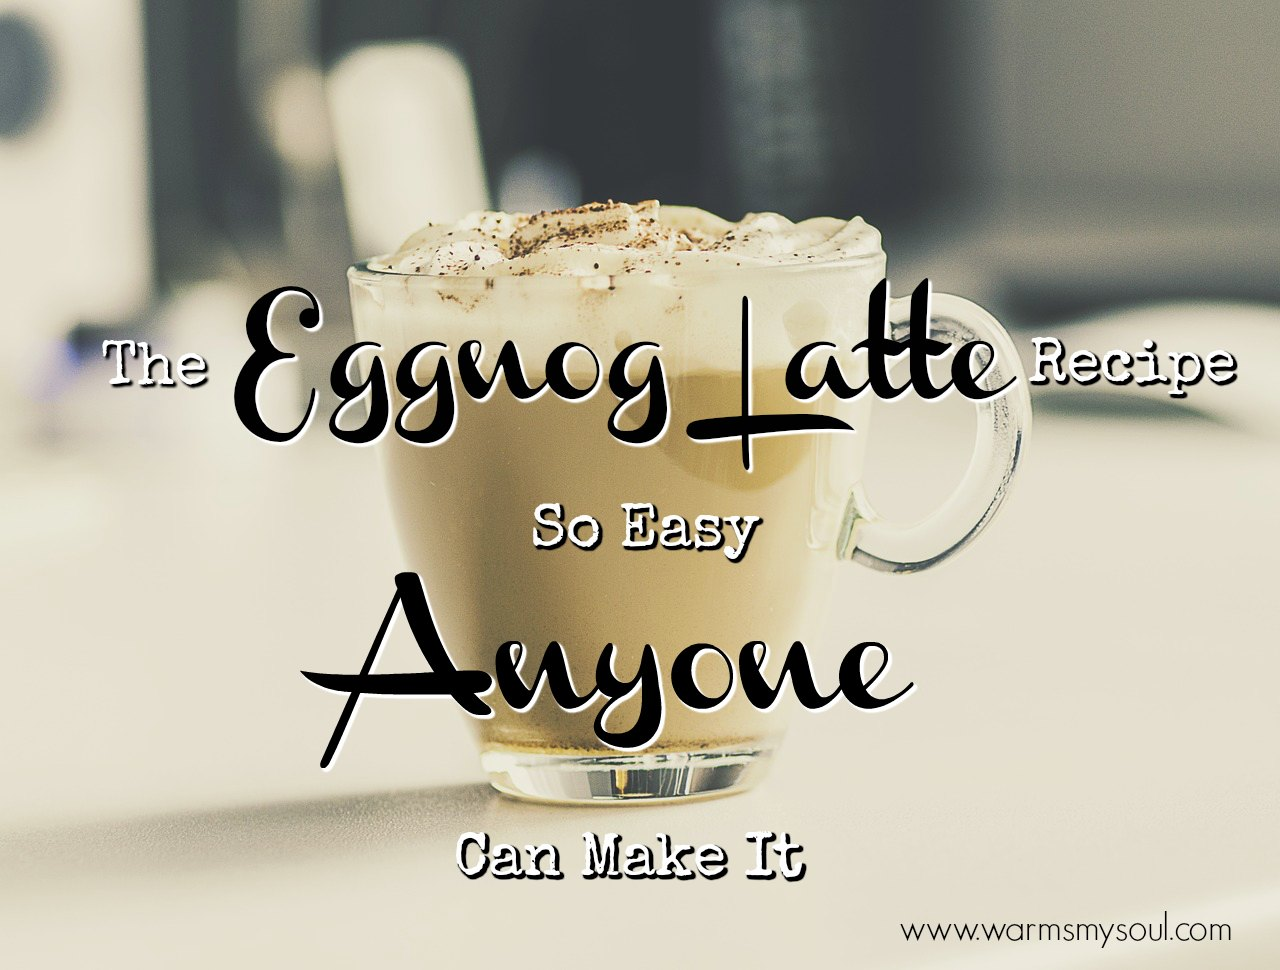 The Eggnog Latte Recipe So Easy Anyone Can Make it.